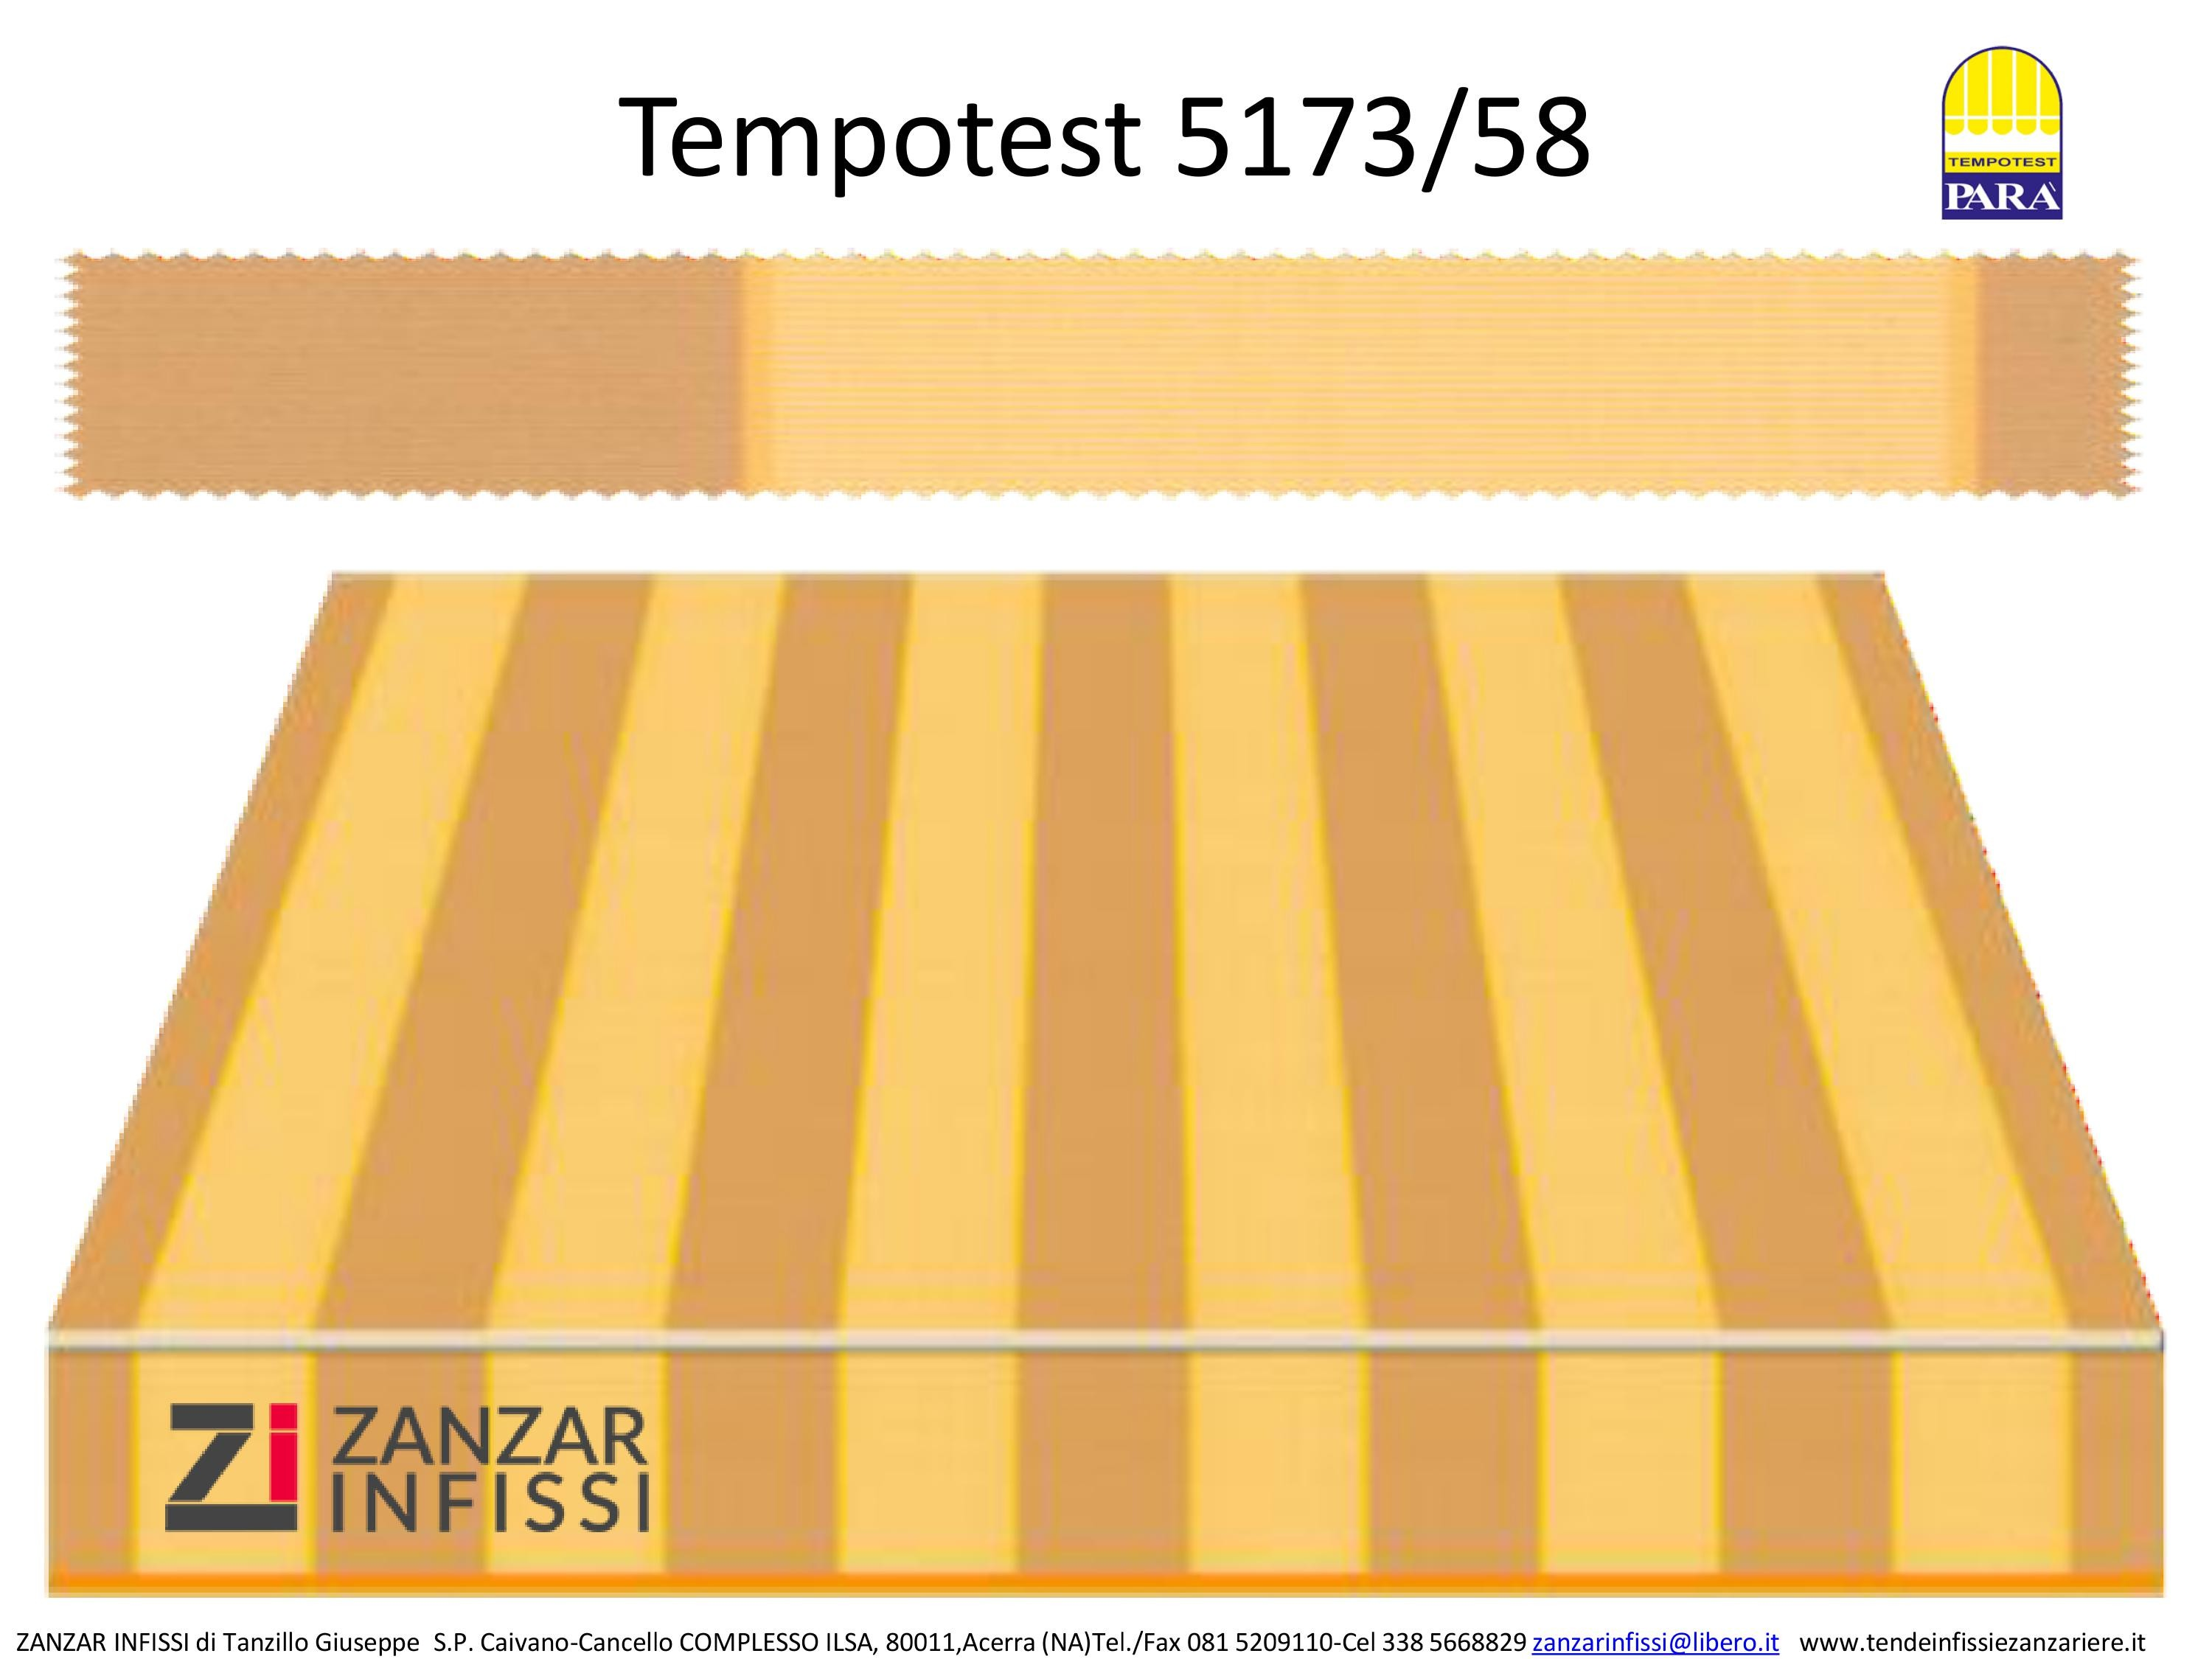 Tempotest 5173/58